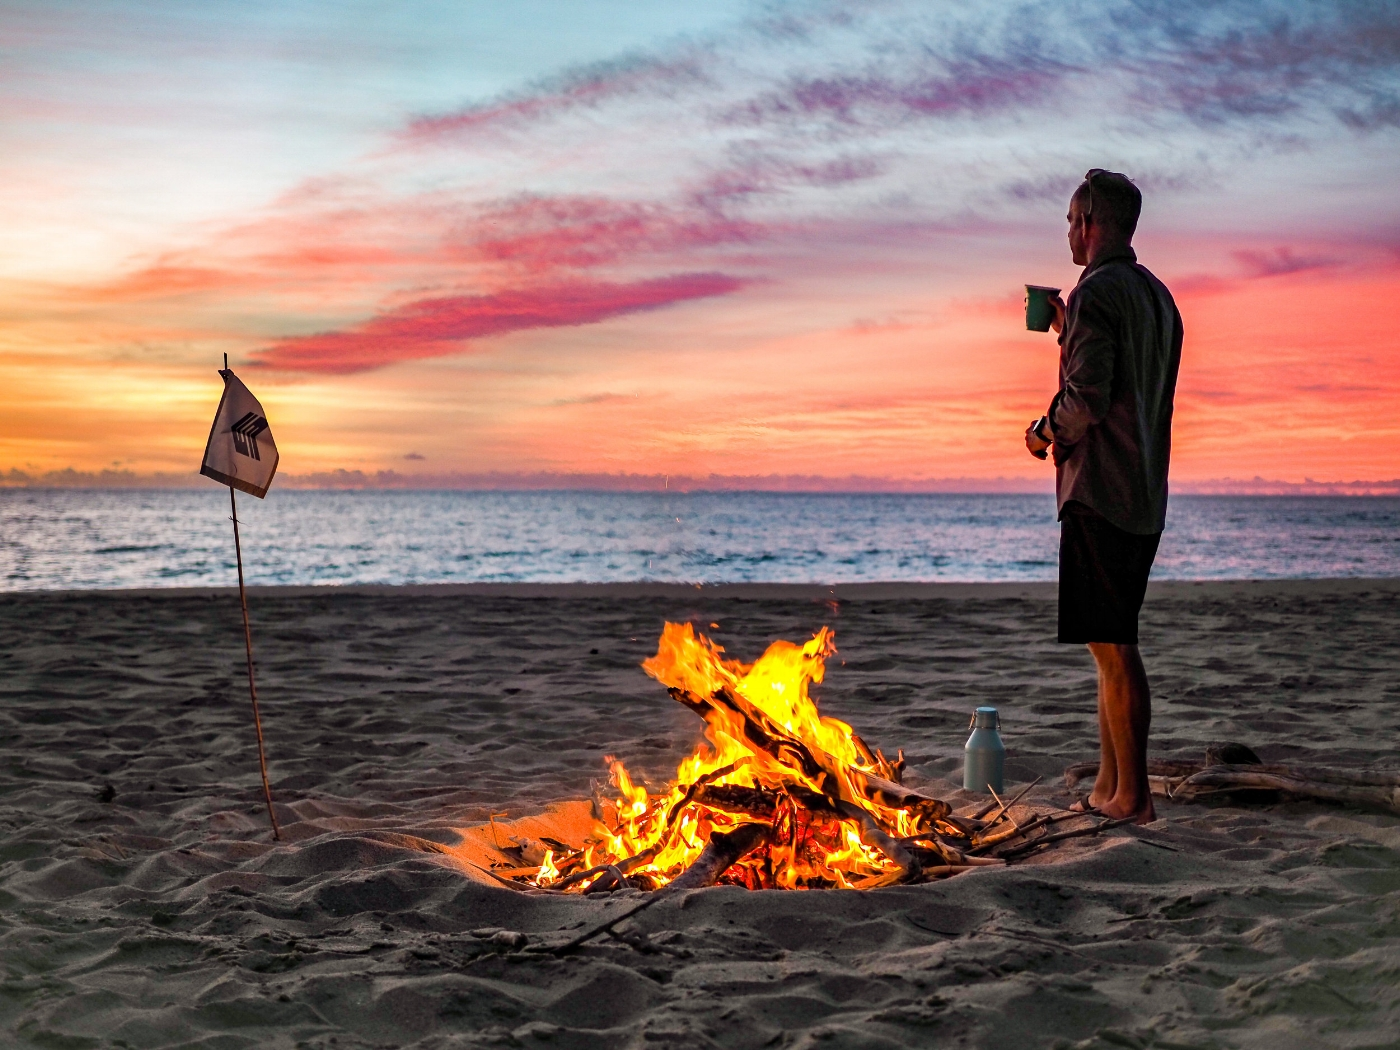 Beach bonfire with our Miir growler filled with mezcal margaritas